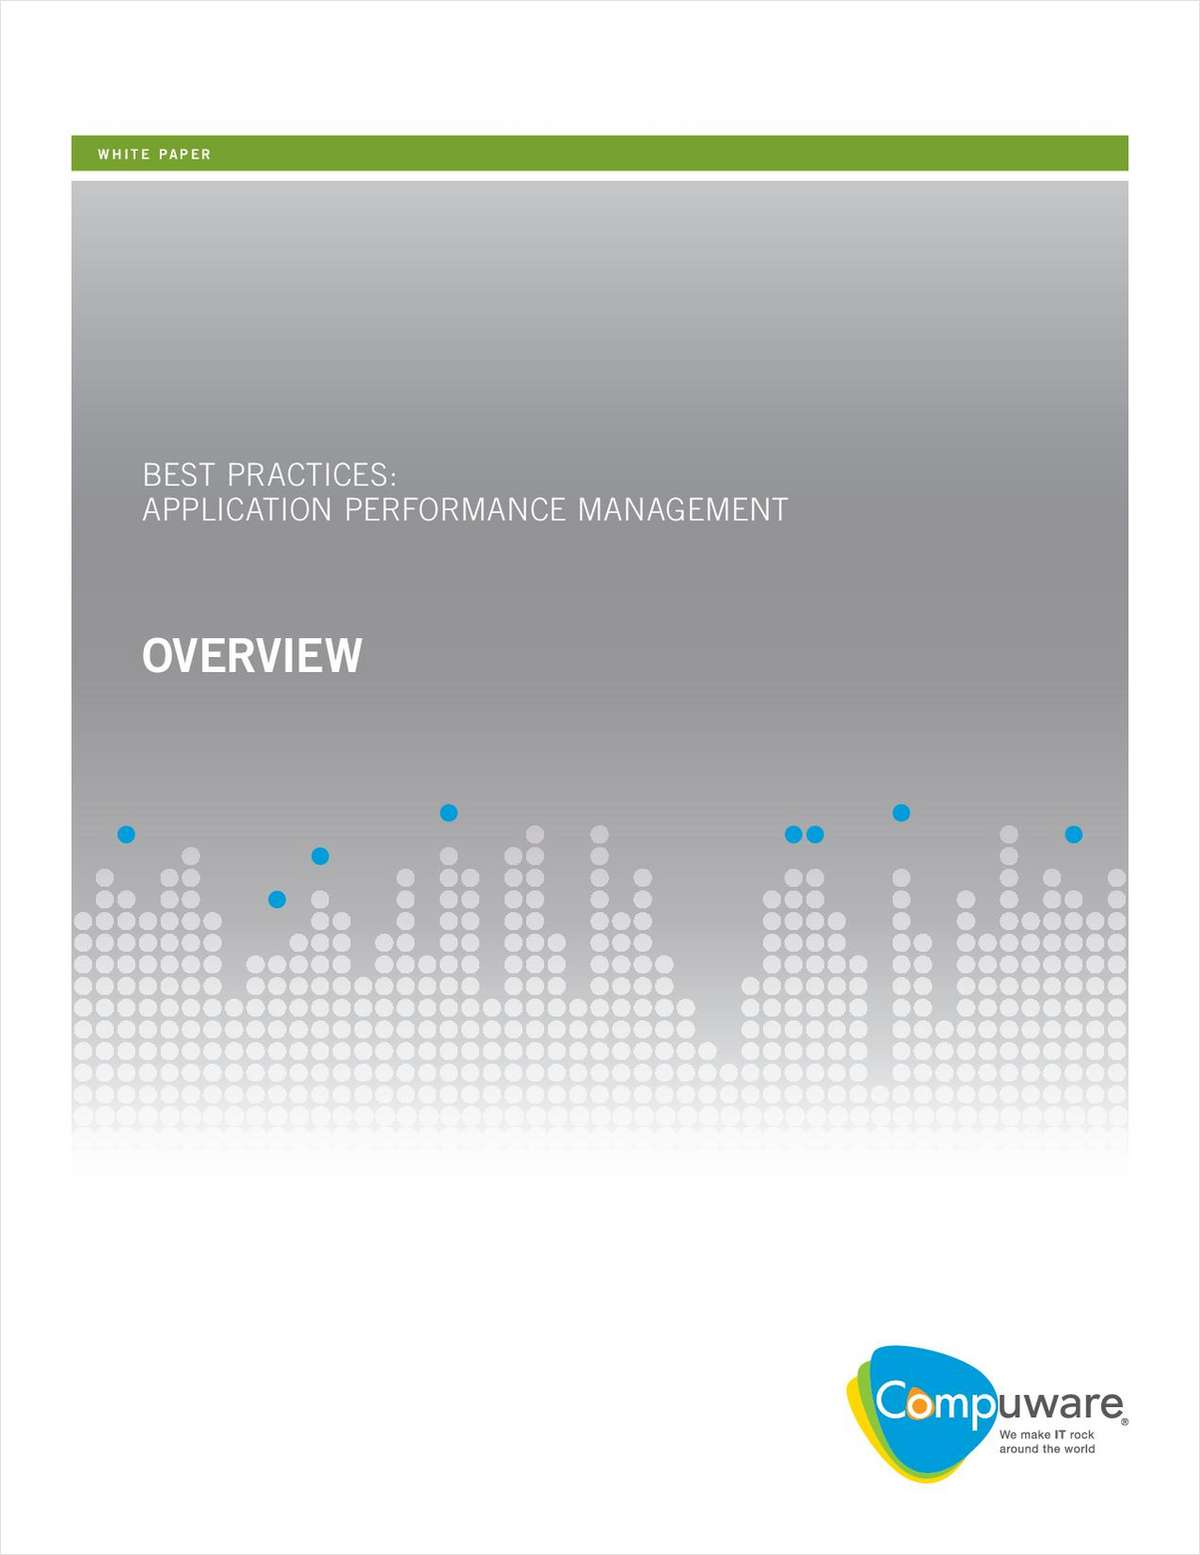 Best Practices for Application Performance Management